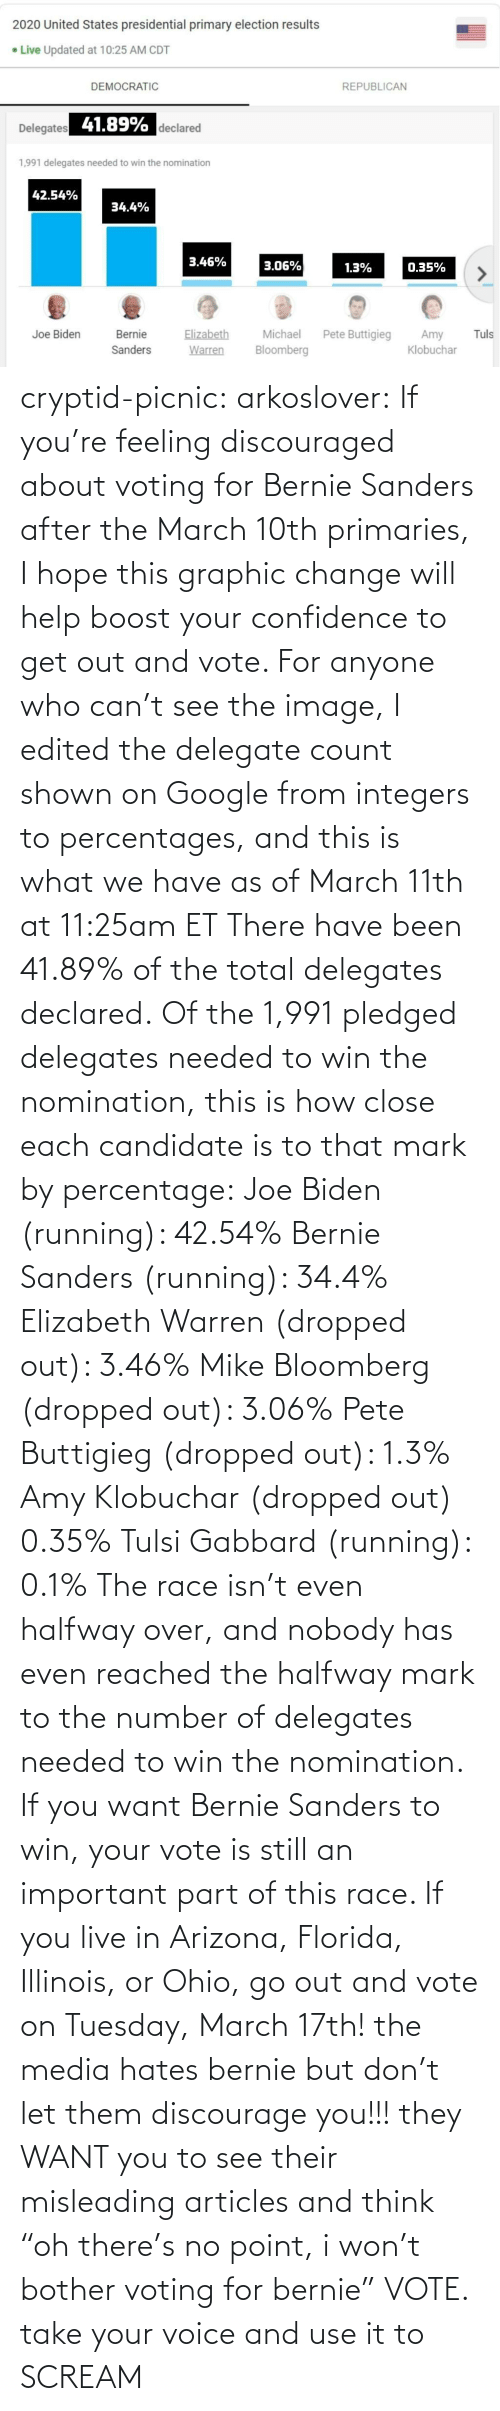 "I Won: cryptid-picnic: arkoslover:   If you're feeling discouraged about voting for Bernie Sanders after the March 10th primaries, I hope this graphic change will help boost your confidence to get out and vote. For anyone who can't see the image, I edited the delegate count shown on Google from integers to percentages, and this is what we have as of March 11th at 11:25am ET There have been 41.89% of the total delegates declared. Of the 1,991 pledged delegates needed to win the nomination, this is how close each candidate is to that mark by percentage: Joe Biden (running): 42.54% Bernie Sanders (running): 34.4% Elizabeth Warren (dropped out): 3.46% Mike Bloomberg (dropped out): 3.06% Pete Buttigieg (dropped out): 1.3% Amy Klobuchar (dropped out) 0.35% Tulsi Gabbard (running): 0.1% The race isn't even halfway over, and nobody has even reached the halfway mark to the number of delegates needed to win the nomination. If you want Bernie Sanders to win, your vote is still an important part of this race. If you live in Arizona, Florida, Illinois, or Ohio, go out and vote on Tuesday, March 17th!    the media hates bernie but don't let them discourage you!!! they WANT you to see their misleading articles and think ""oh there's no point, i won't bother voting for bernie"" VOTE. take your voice and use it to SCREAM"